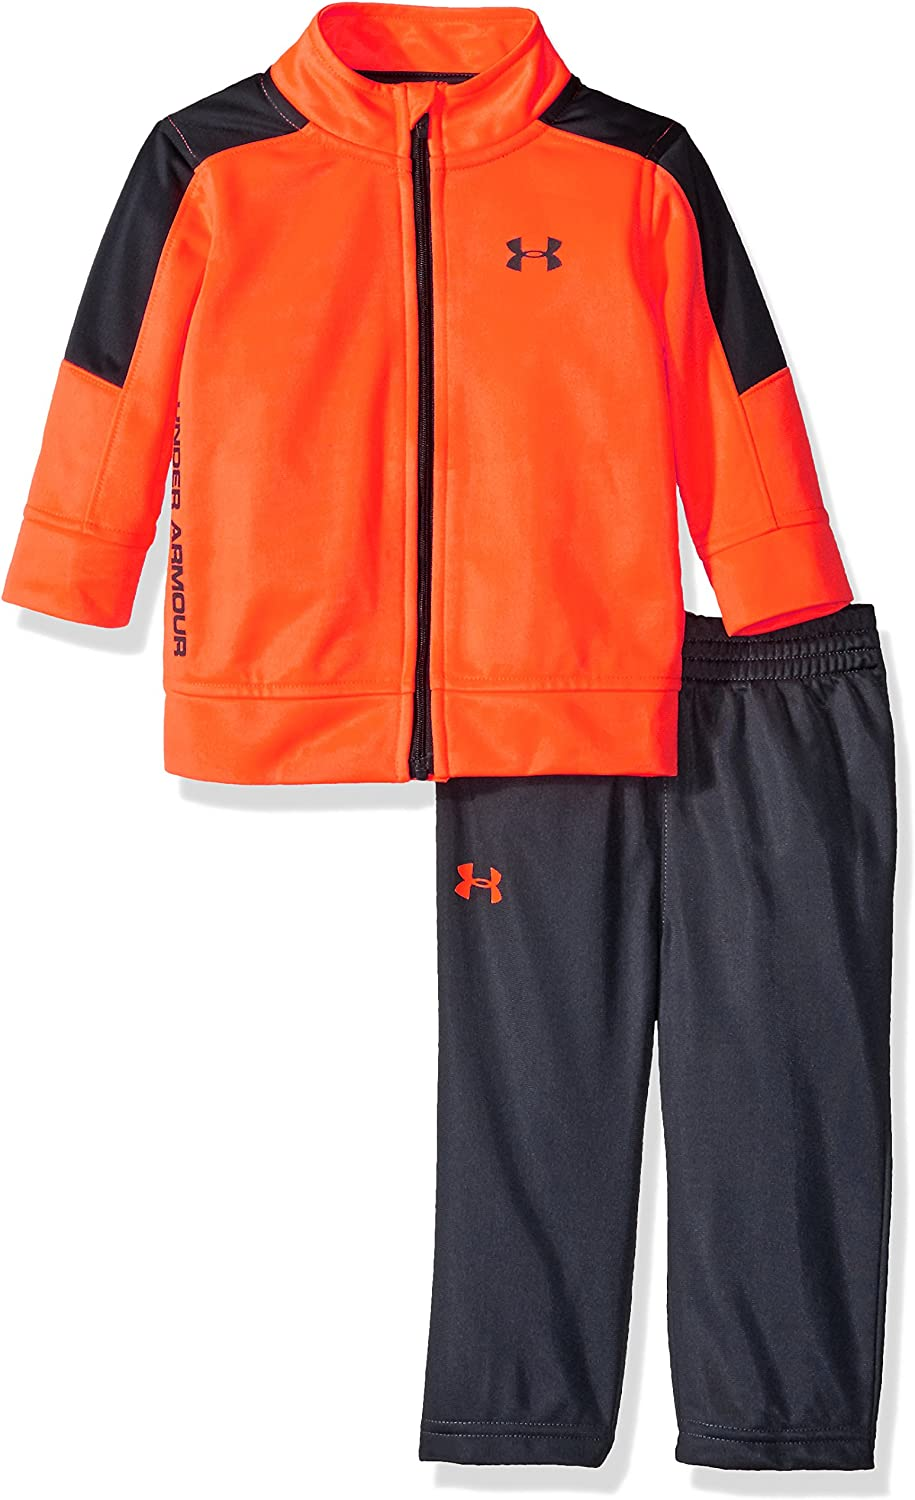 Under Armour boys Zip Jacket and Pant Set Tracksuit